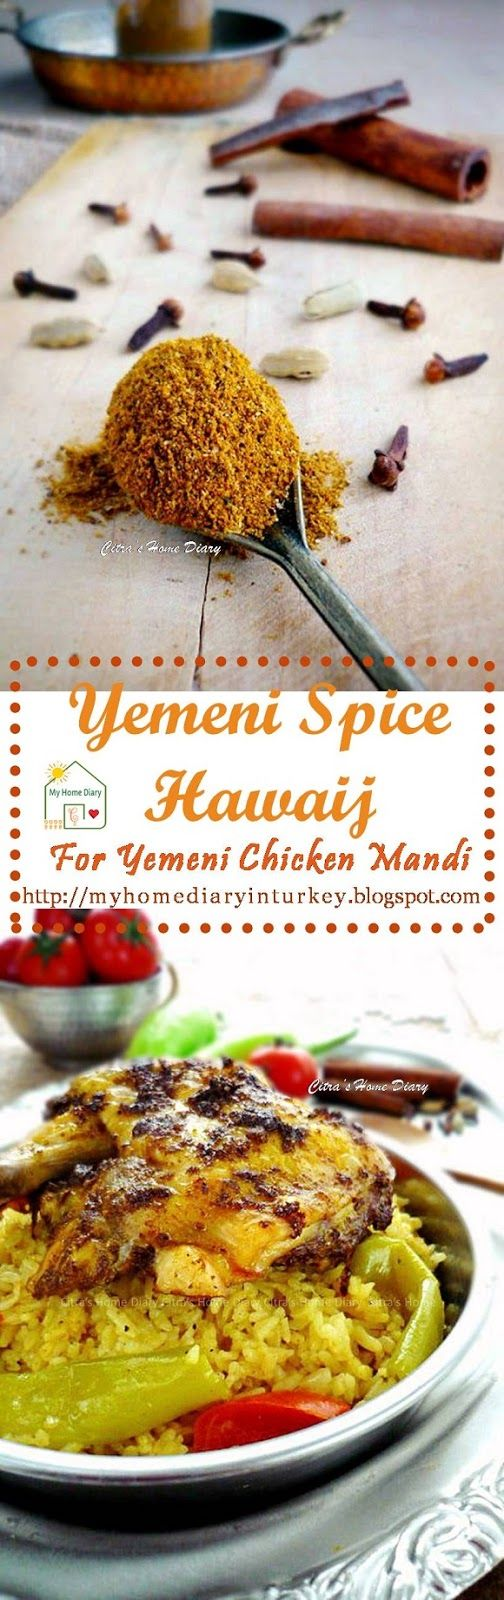 Yemeni Spice Hawaij and Chicken mandi recipe